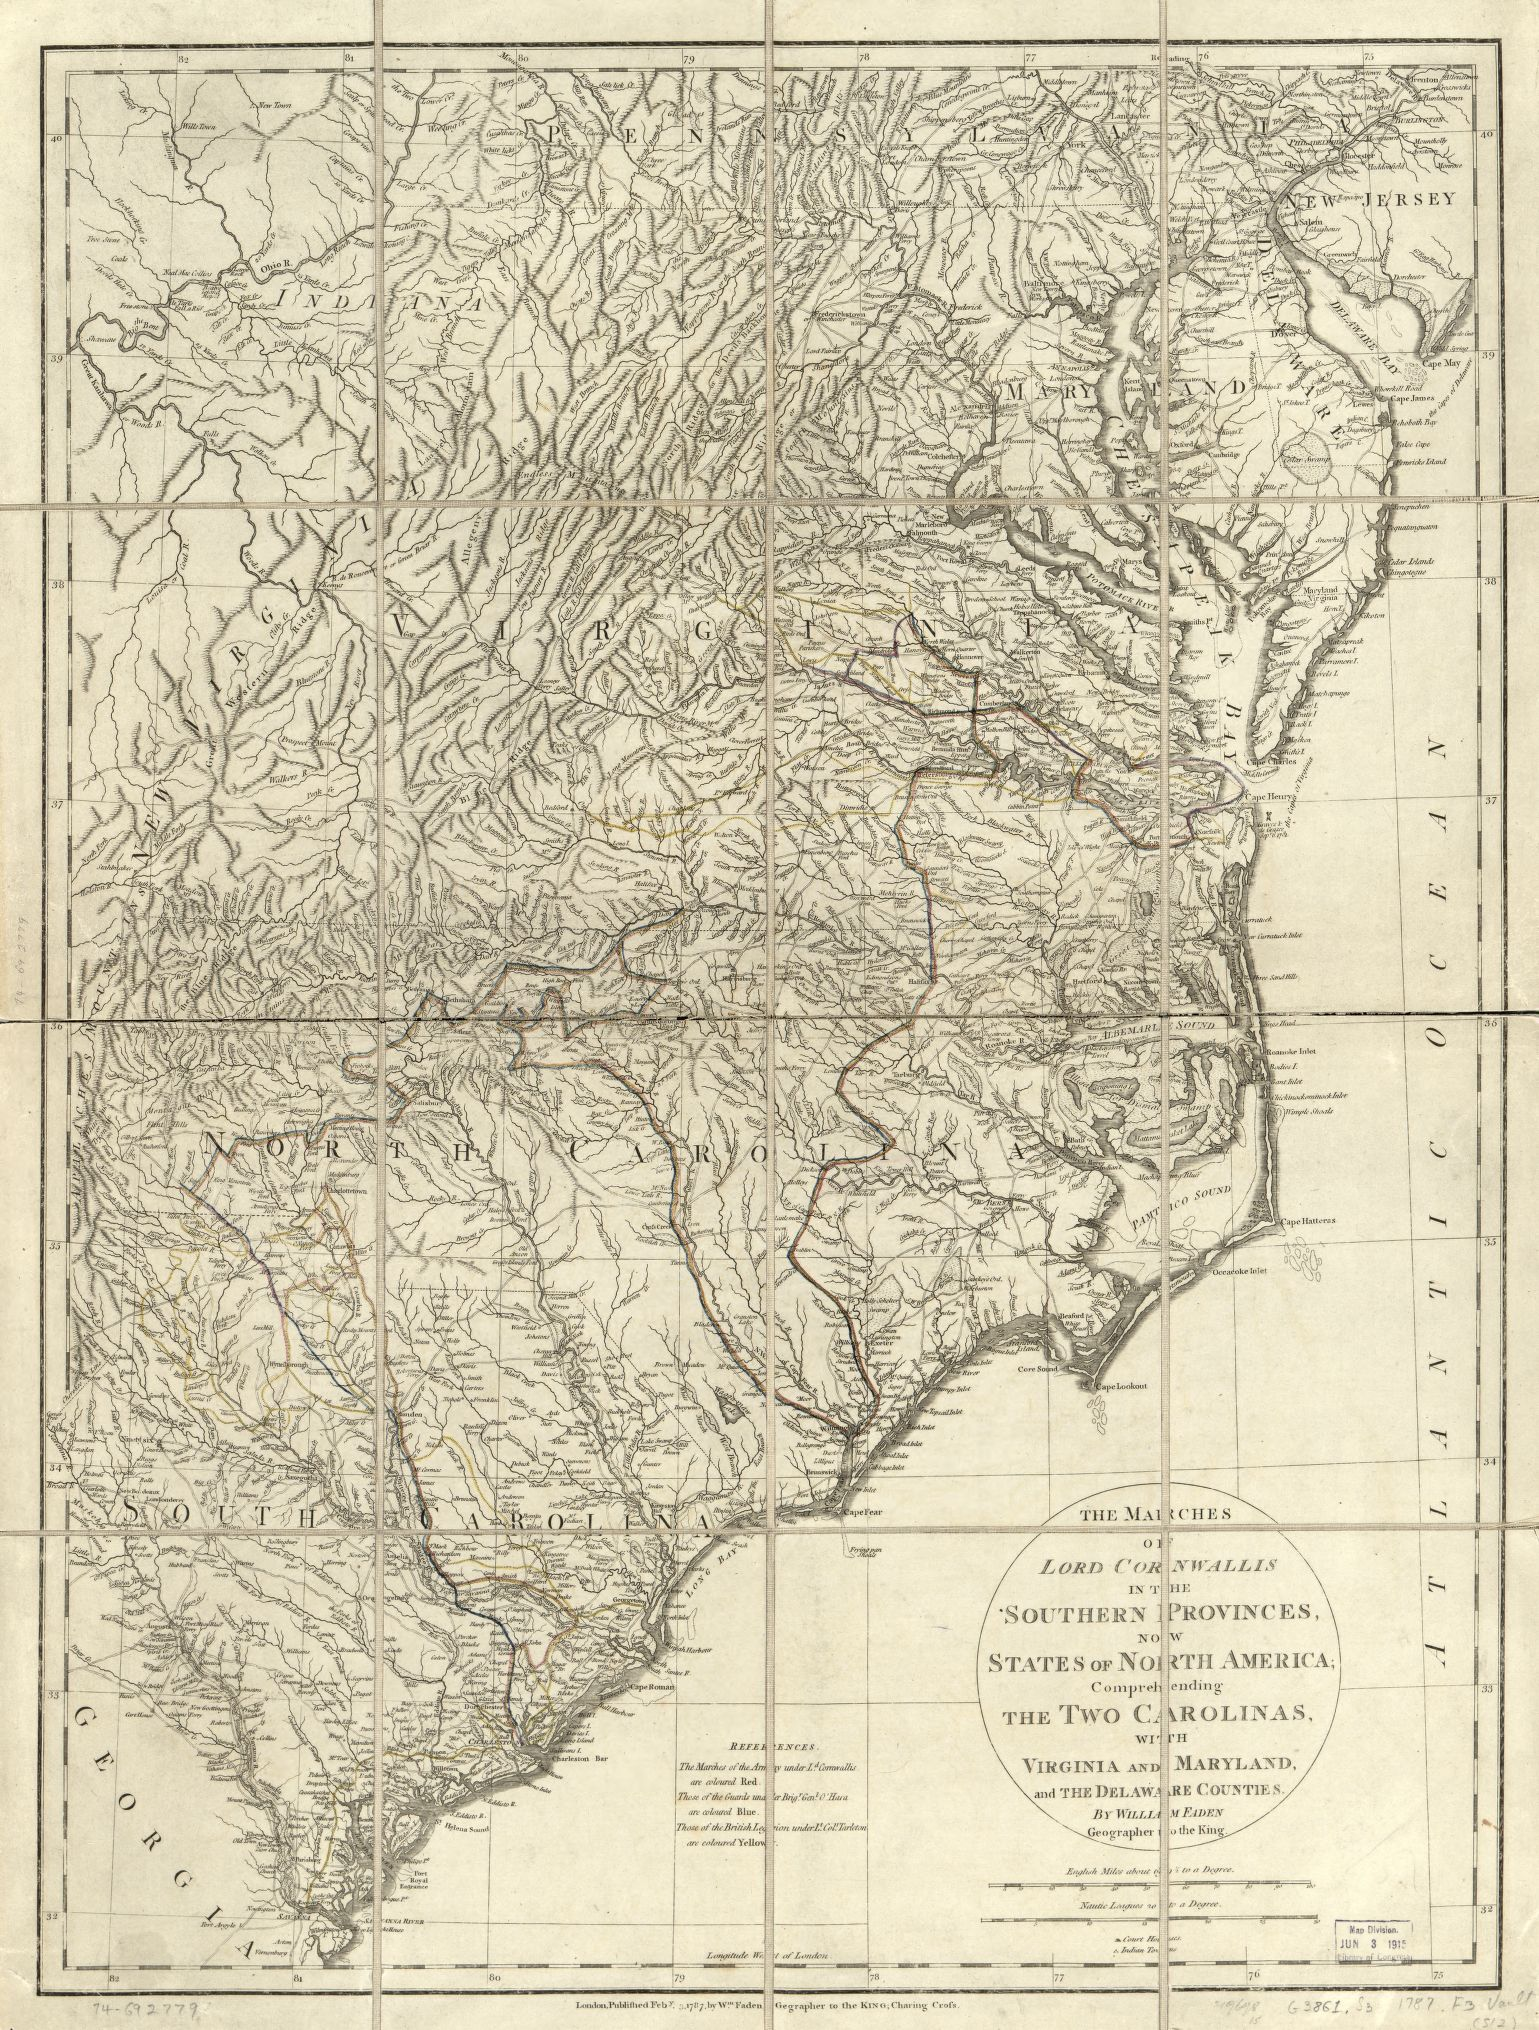 The marches of Lord Cornwallis in the Southern Provinces, now States of North America; comprehending the two Carolinas, with Virginia and Maryland, and the Delaware counties. Courtesy Library of Congress [G3861.S3 1787 .F3]